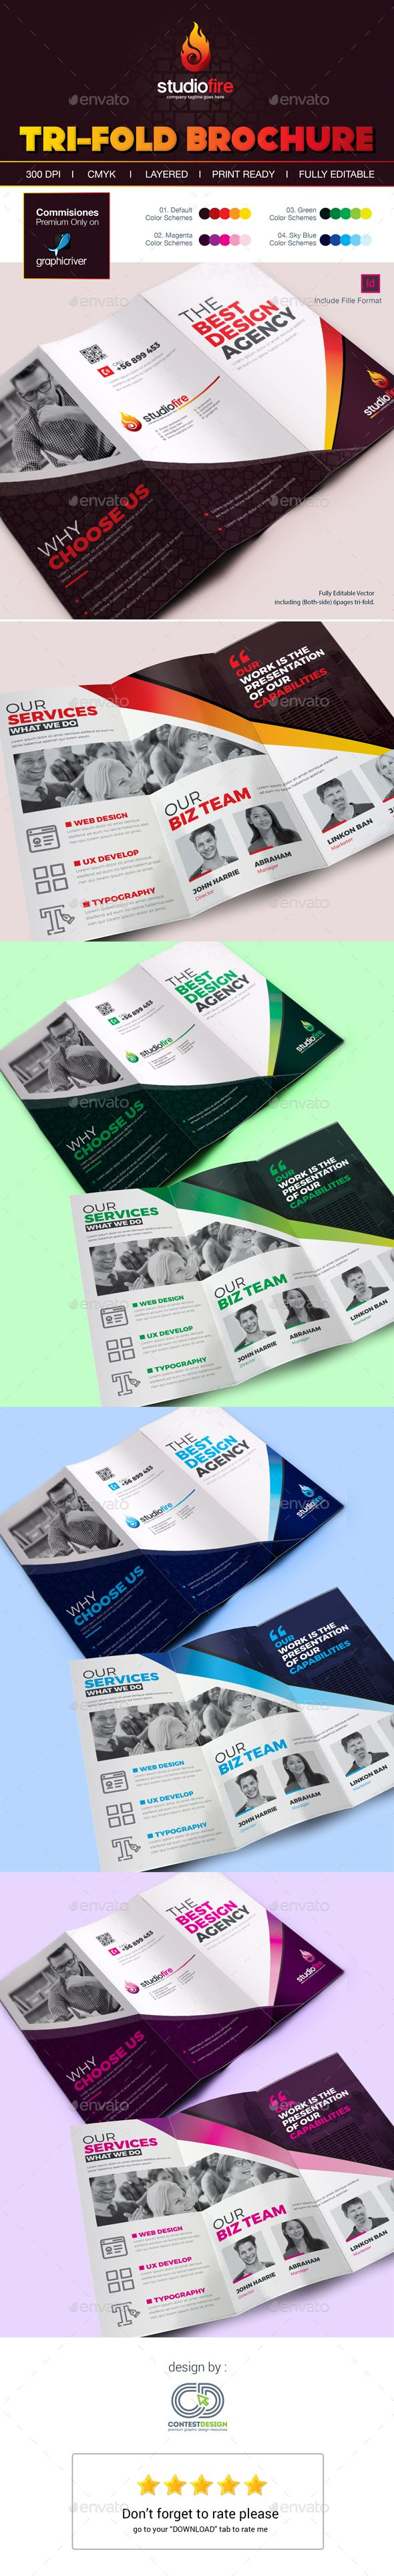 1000 images about workbook design on pinterest corporate brochure design project proposal for Tri fold template indesign